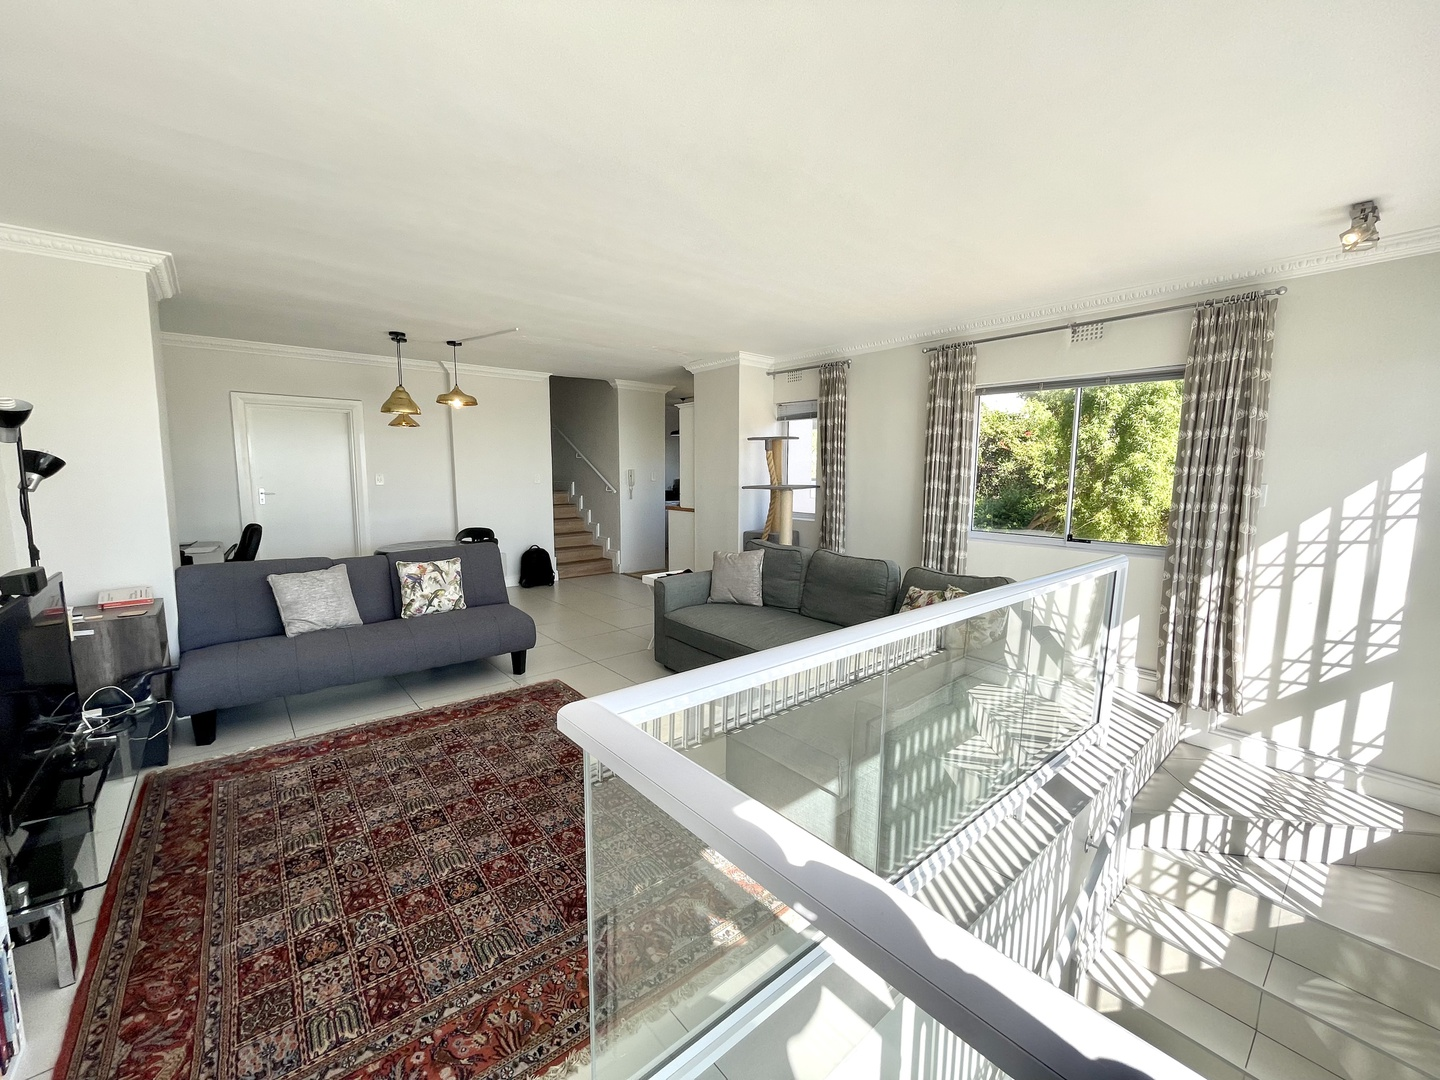 Apartment in Vredehoek - living area